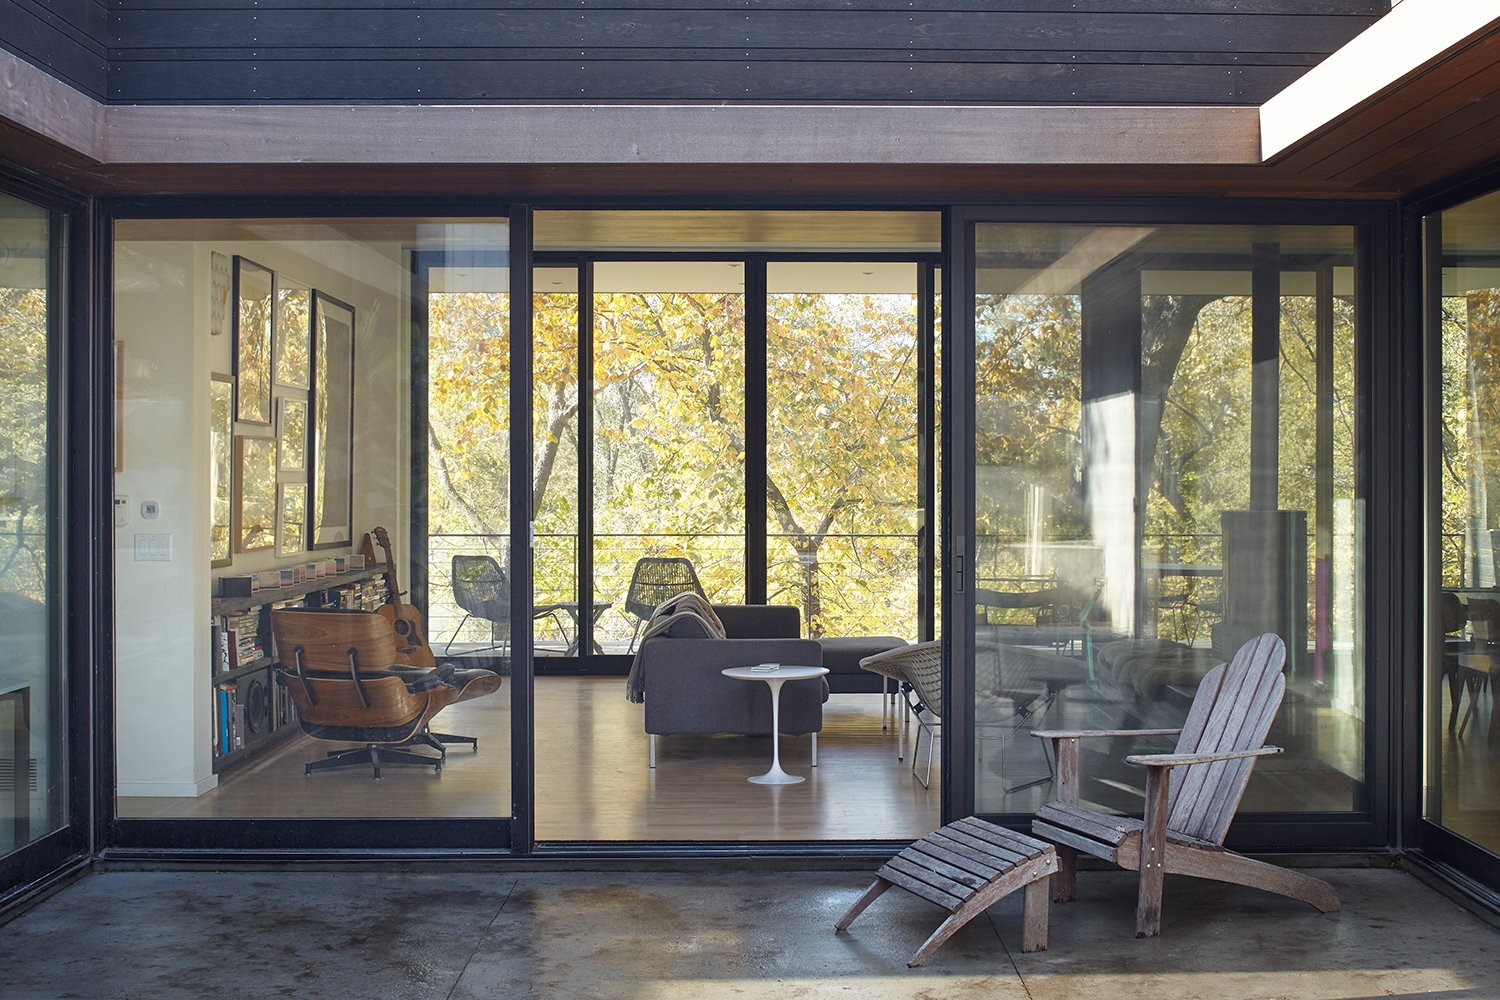 Large sliding doors connect the living room to both the courtyard and a covered porch on the western side of the house. Nature Reigns Supreme at a Verdant Kansas City Home - Photo 5 of 9